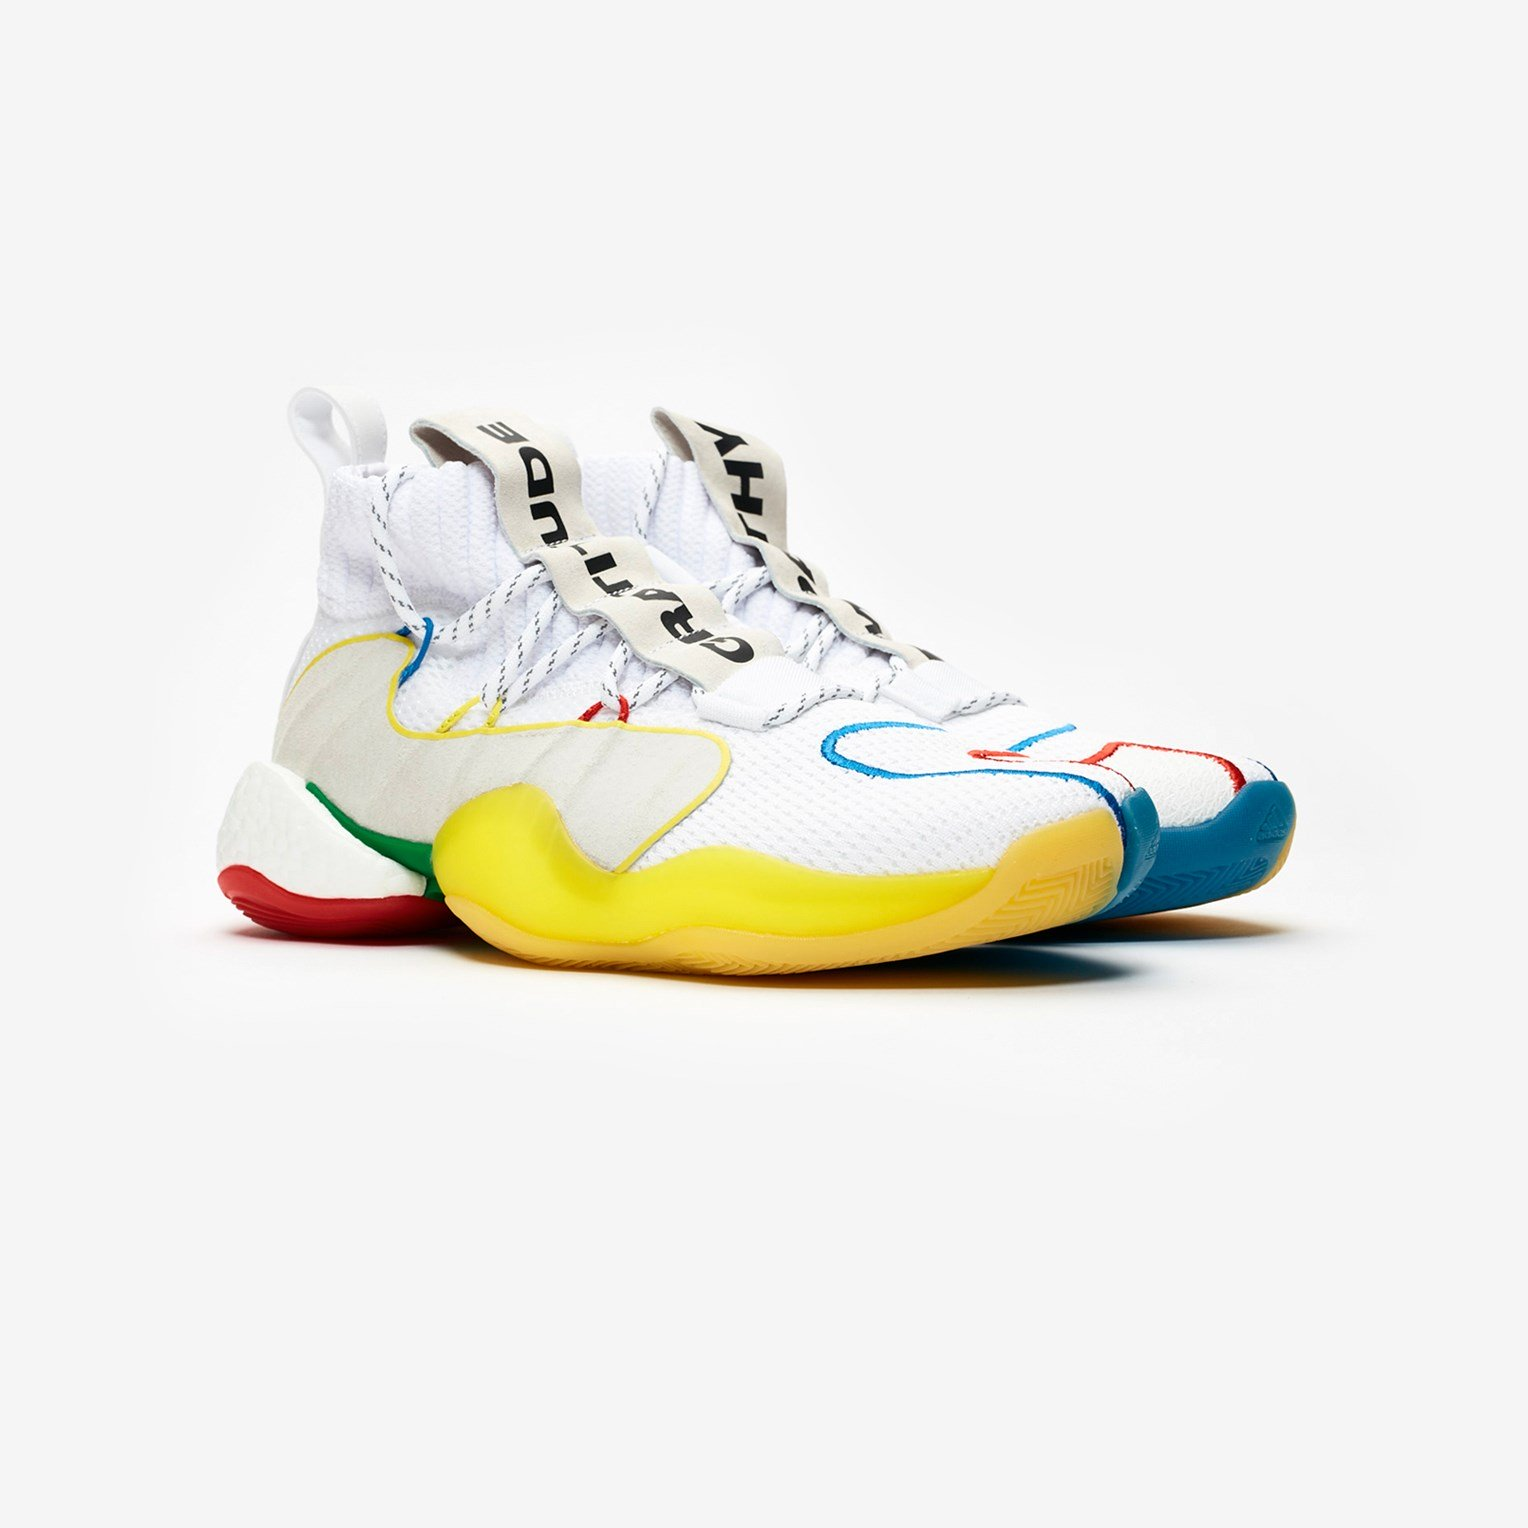 adidas by Pharrell Williams Crazy BYW LVL X PW 男士篮球鞋